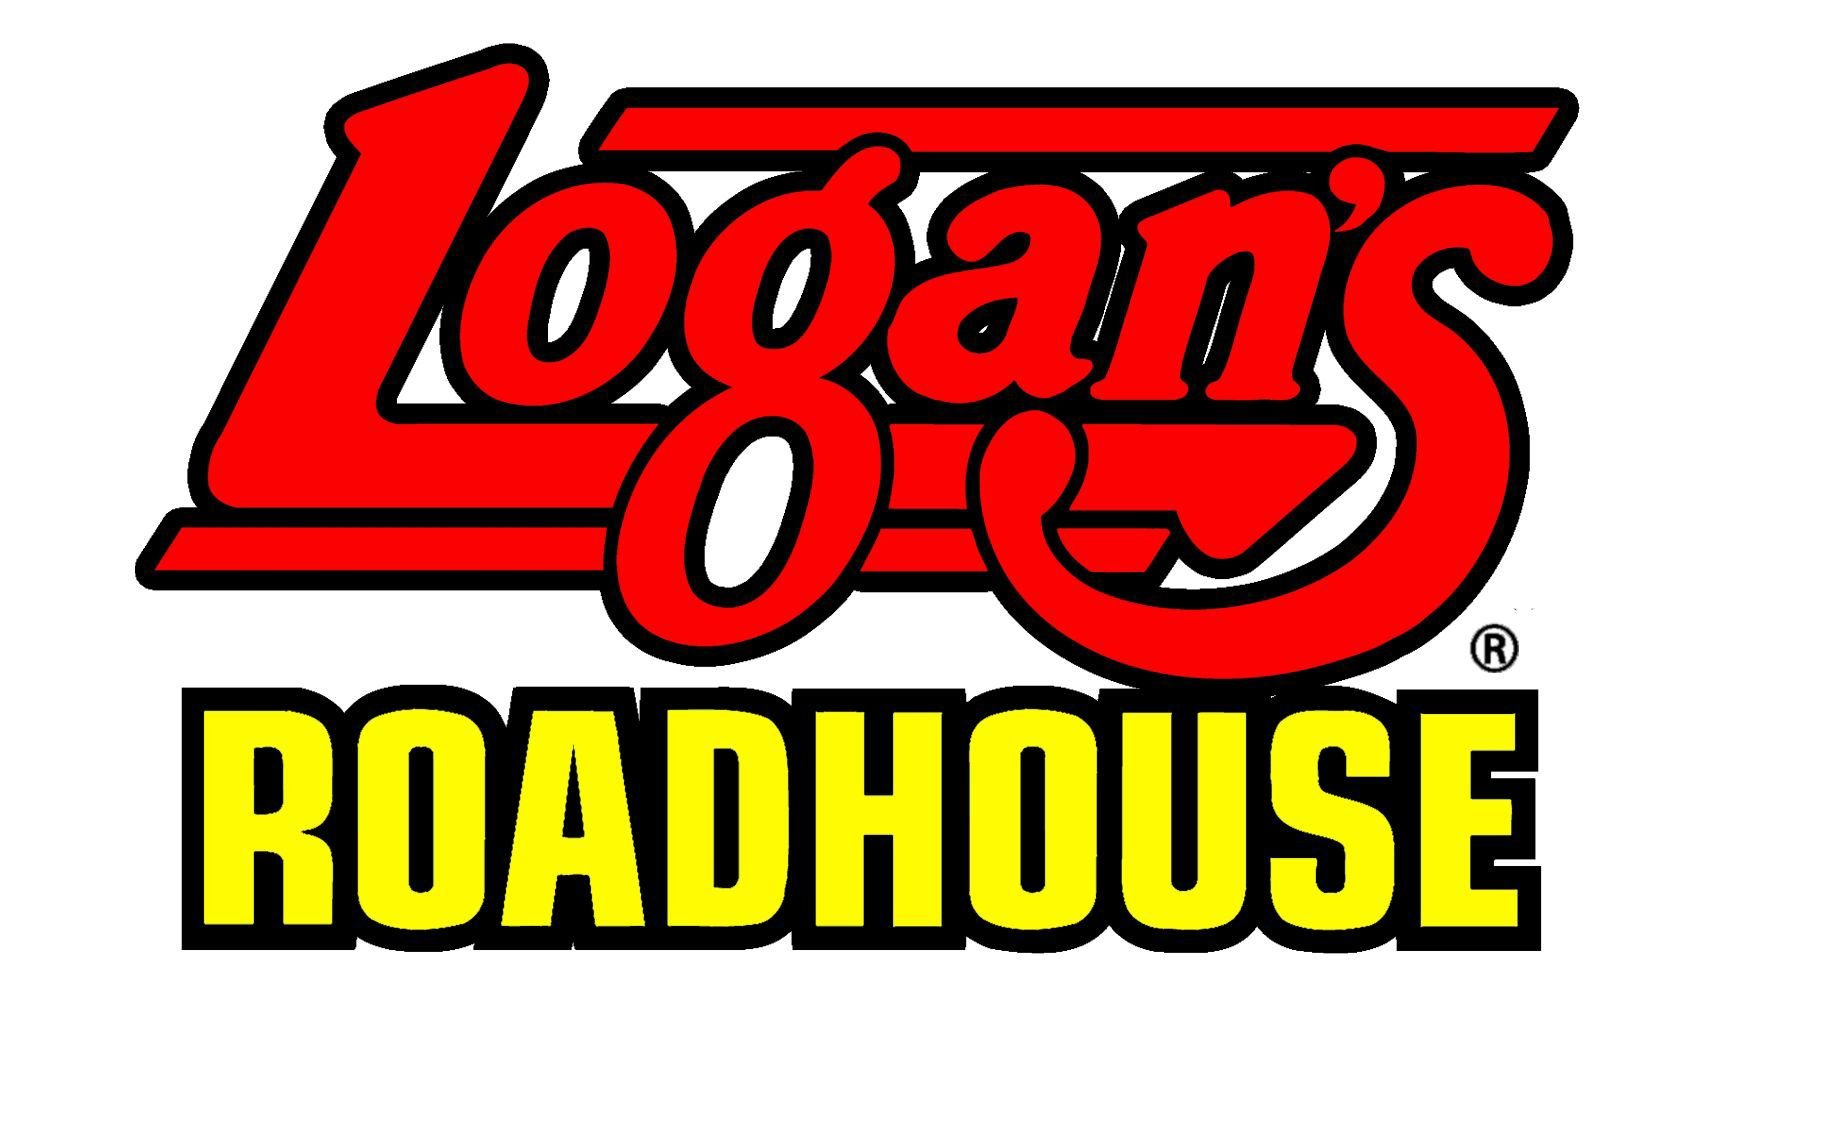 Logan's Roadhouse restaurant chain files for bankruptcy